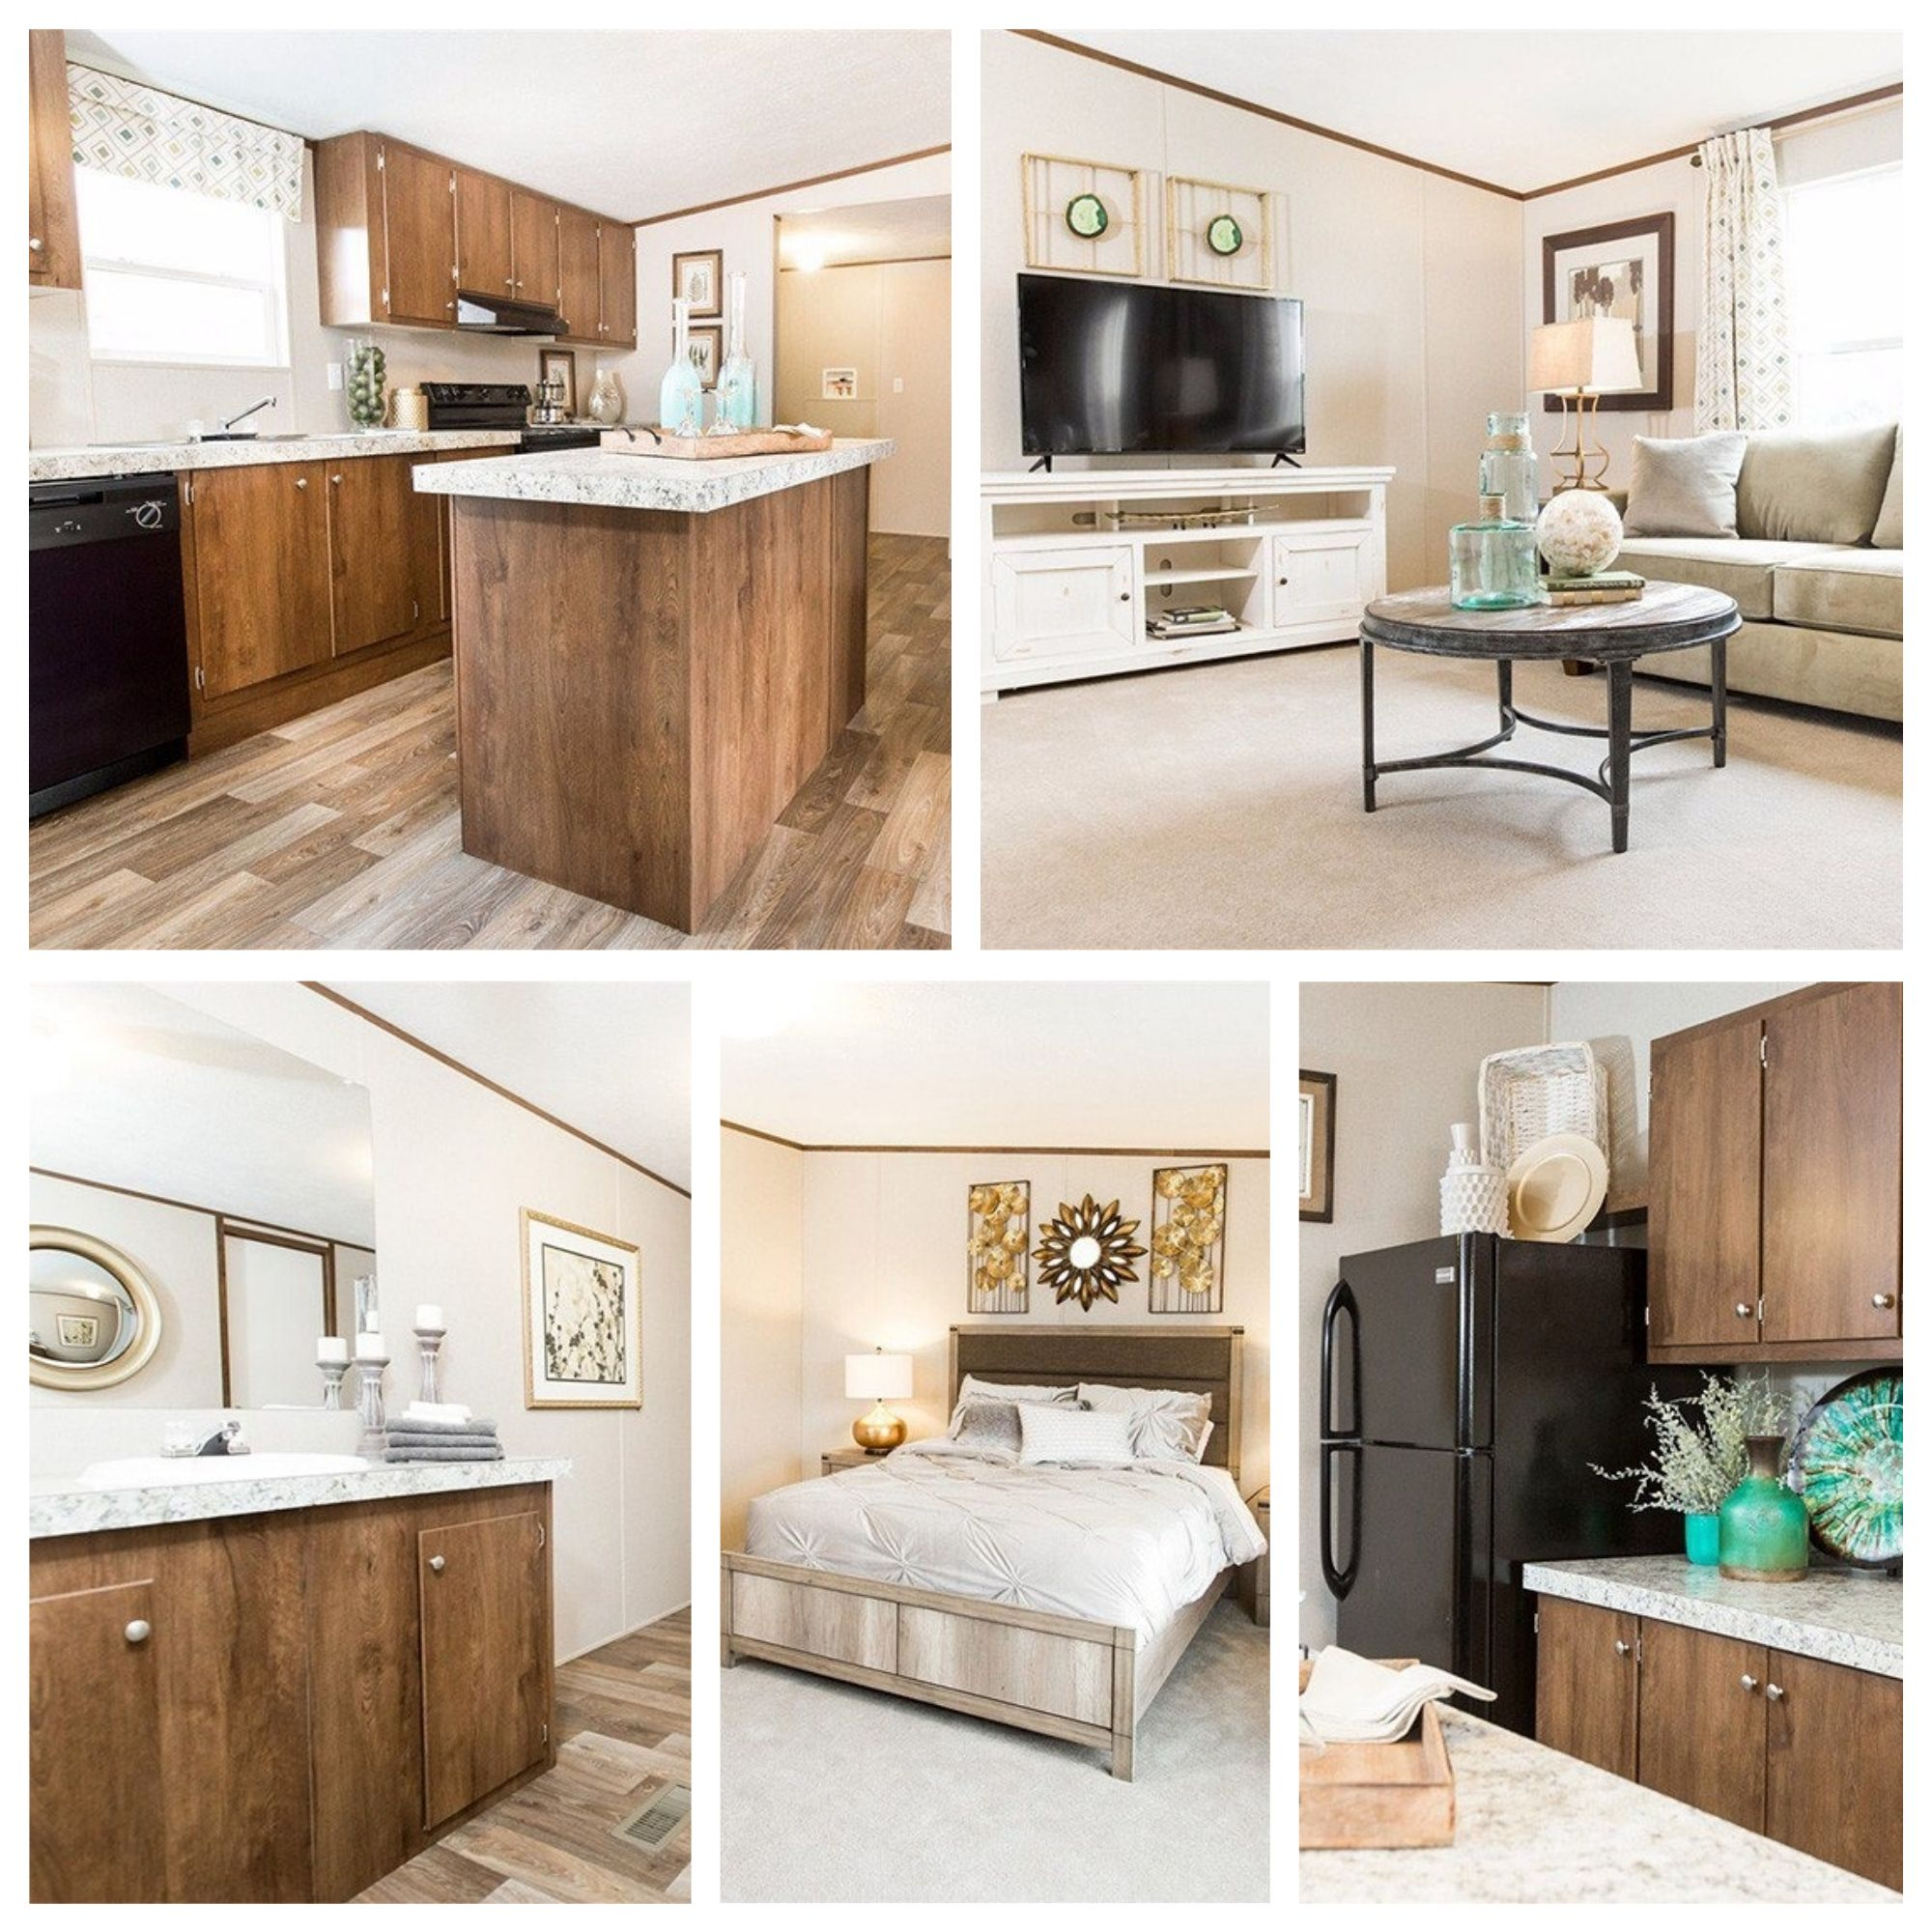 4 Bedroom Mobile Home Starting At Just 52,499 in 2020